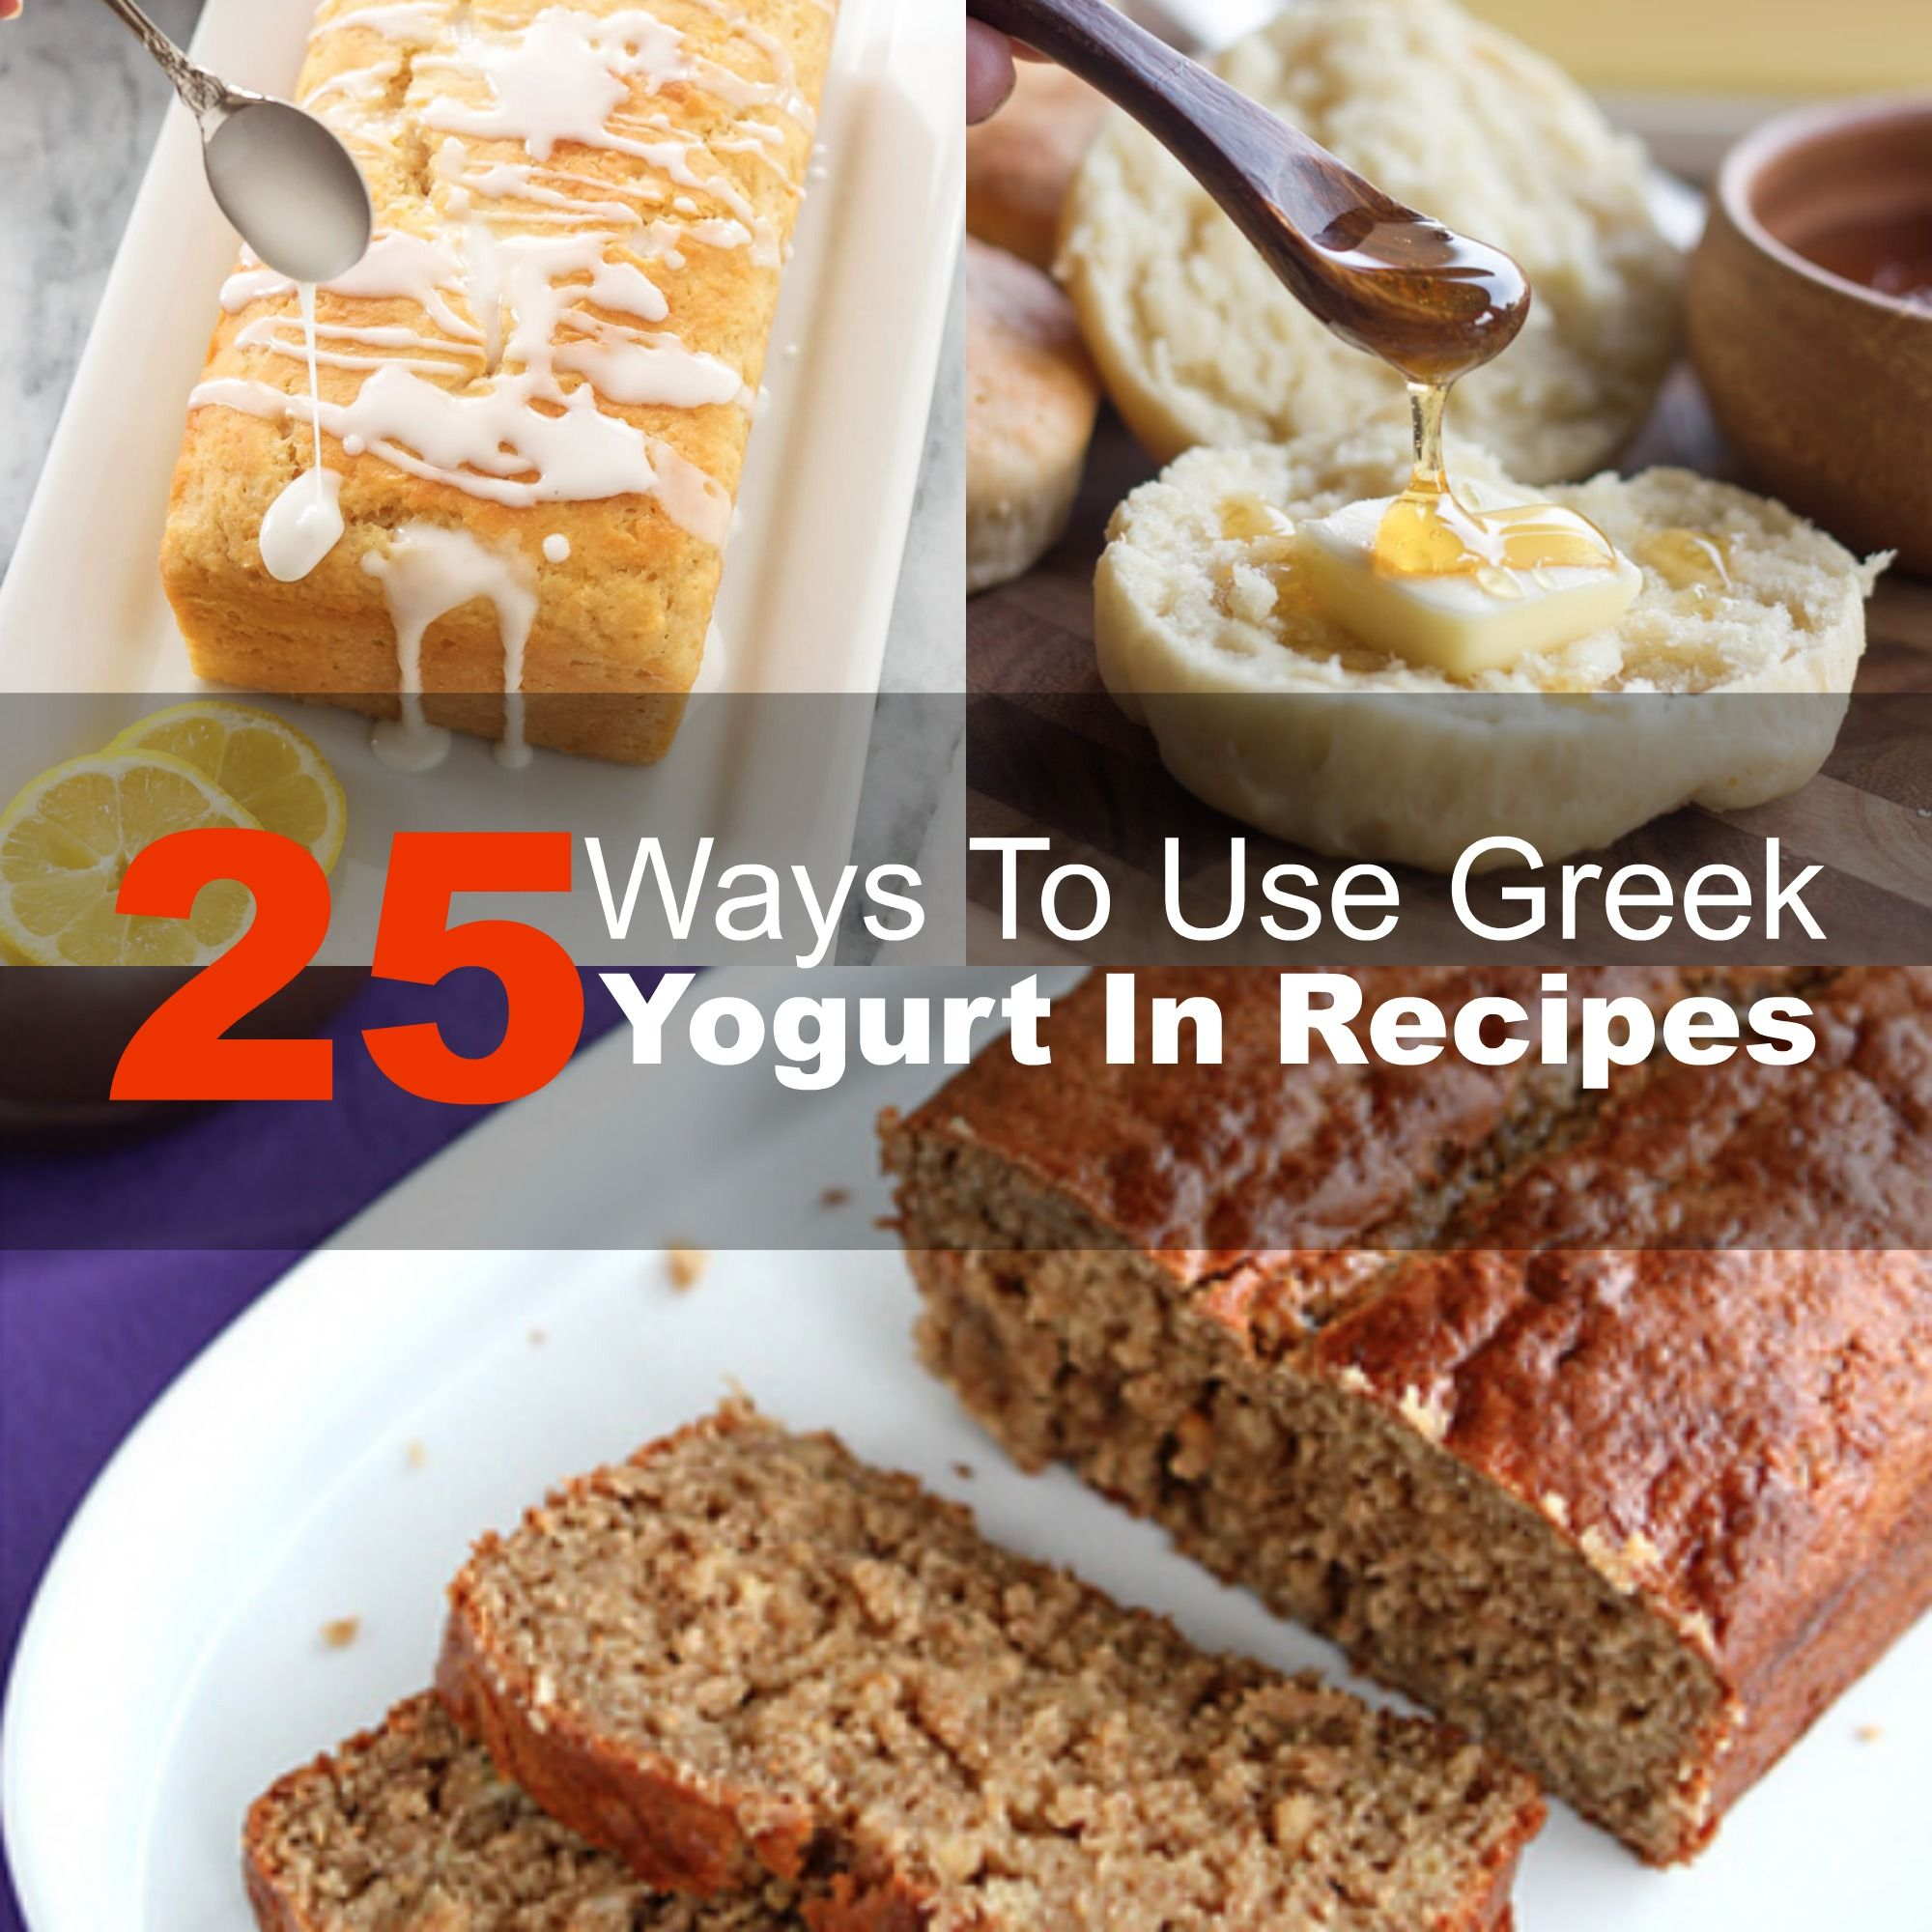 Greek Yogurt is a healthy alternative to many ingredients in several dishes.  Here are some great recipes that use Greek Yogurt as an alternative ingredient. Pumpkin-Spice Pancakes Try these delicious Pumpkin-Spice Pancakes made with Greek Yogurt. Buttermilk Dark Chocolate Chip Muffins These Buttermilk Dark Chocolate Chip Muffins look amazing. Peanut…  Read More»